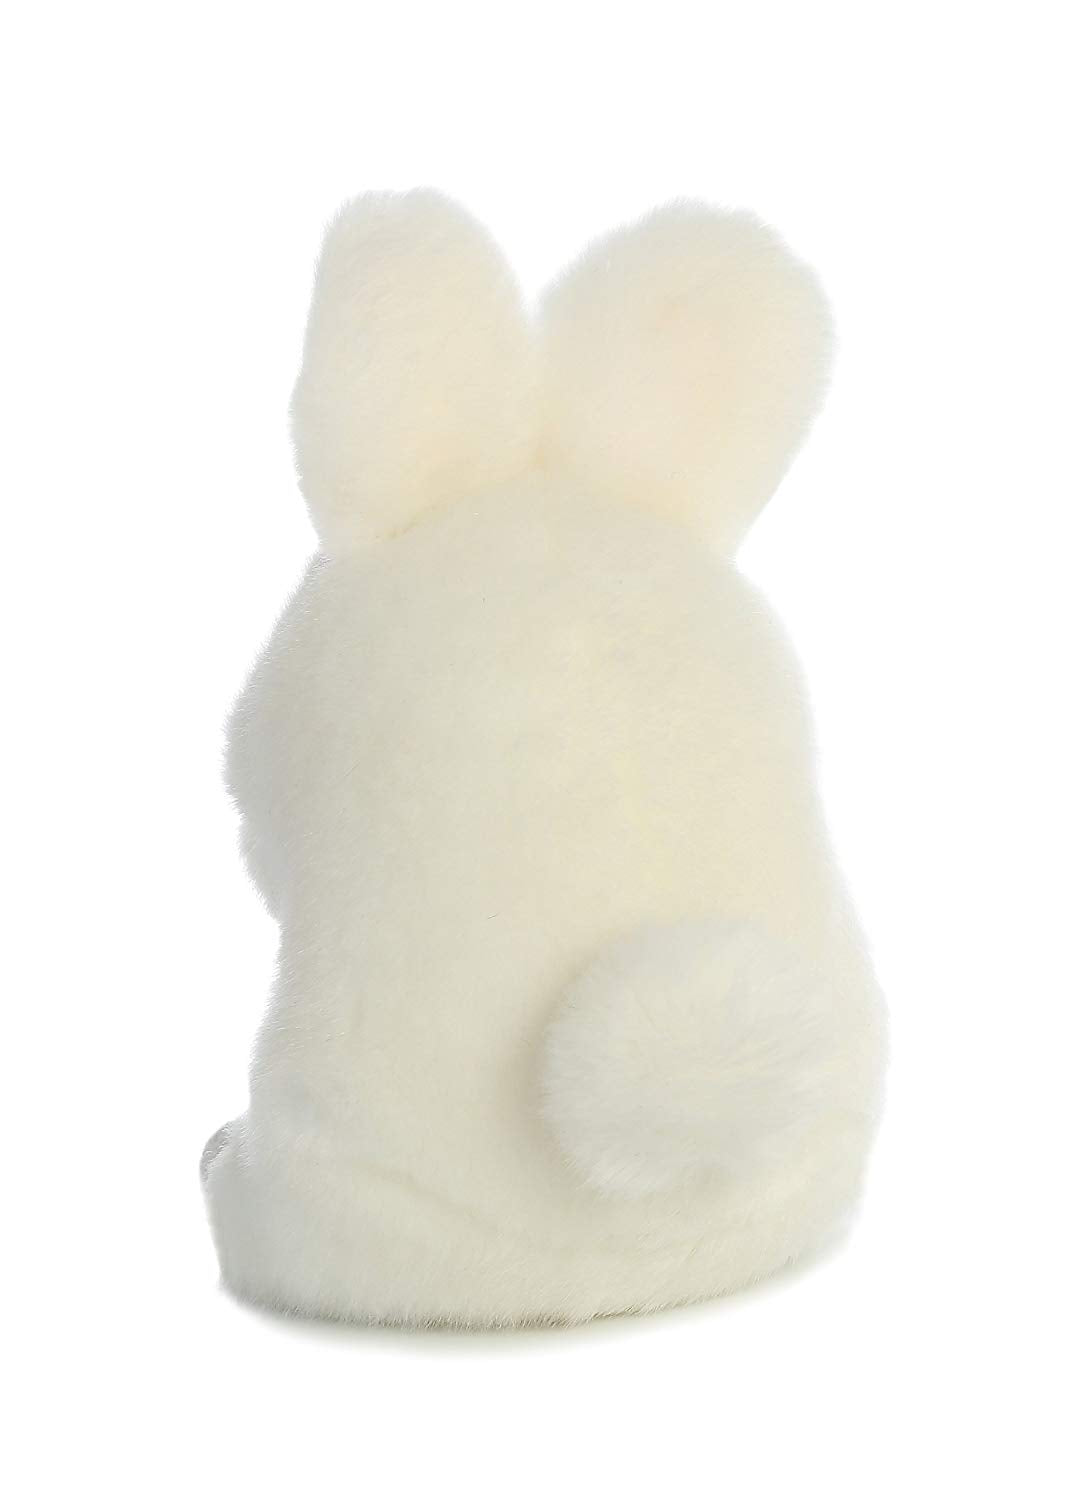 5 inch tall plush white rabbit. Pink ears and black eyes.